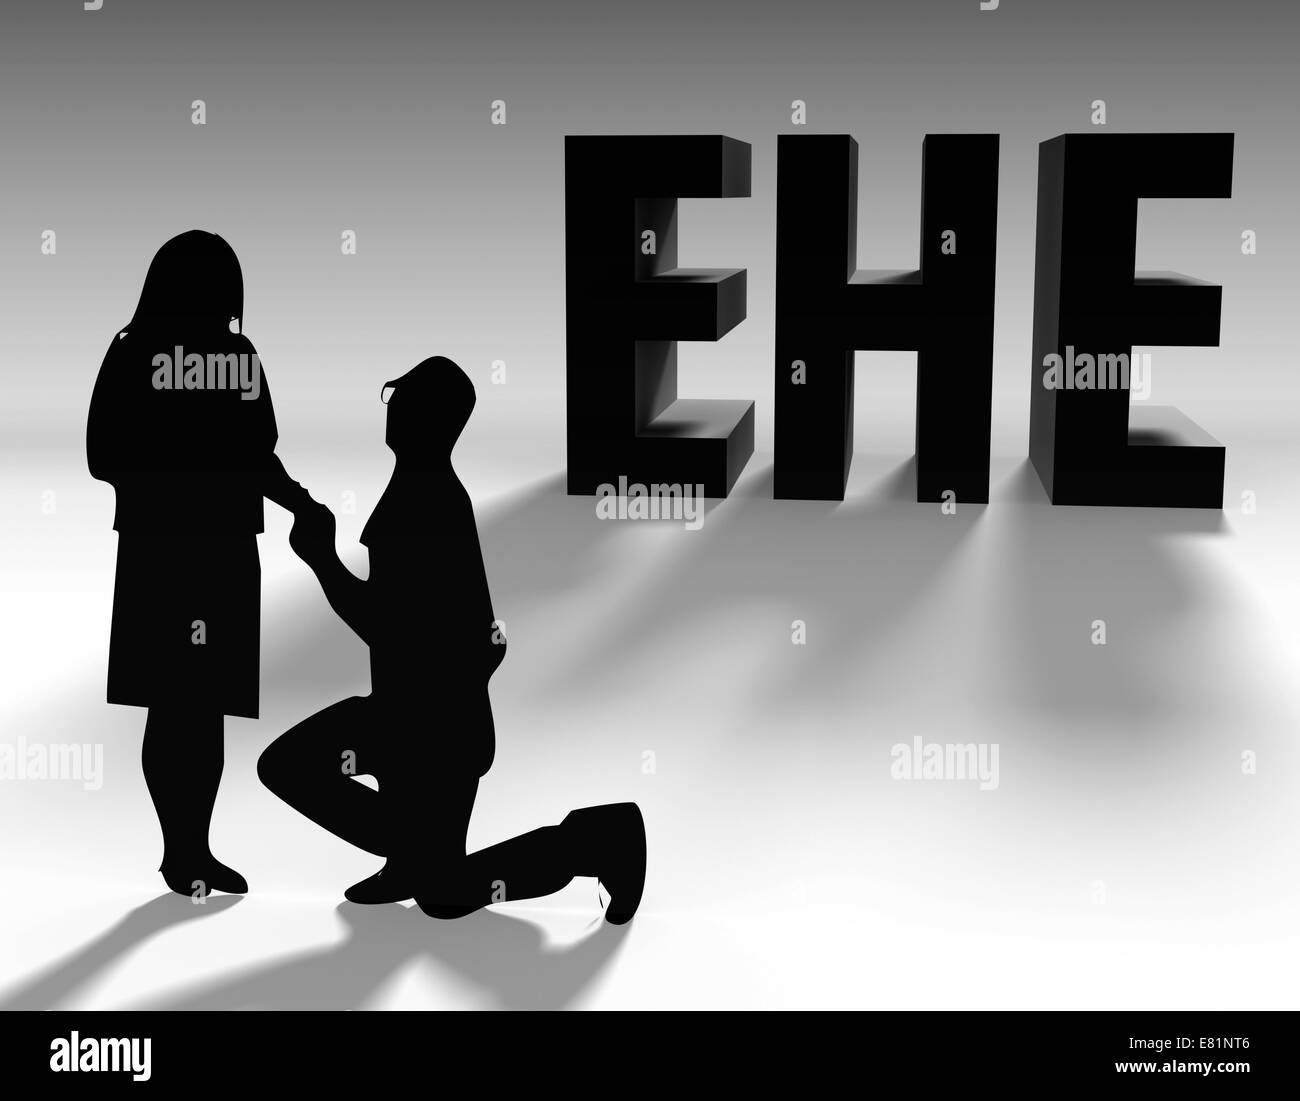 Man proposing to a woman, marriage proposal, lettering 'Ehe', German for 'marriage', illustration - Stock Image